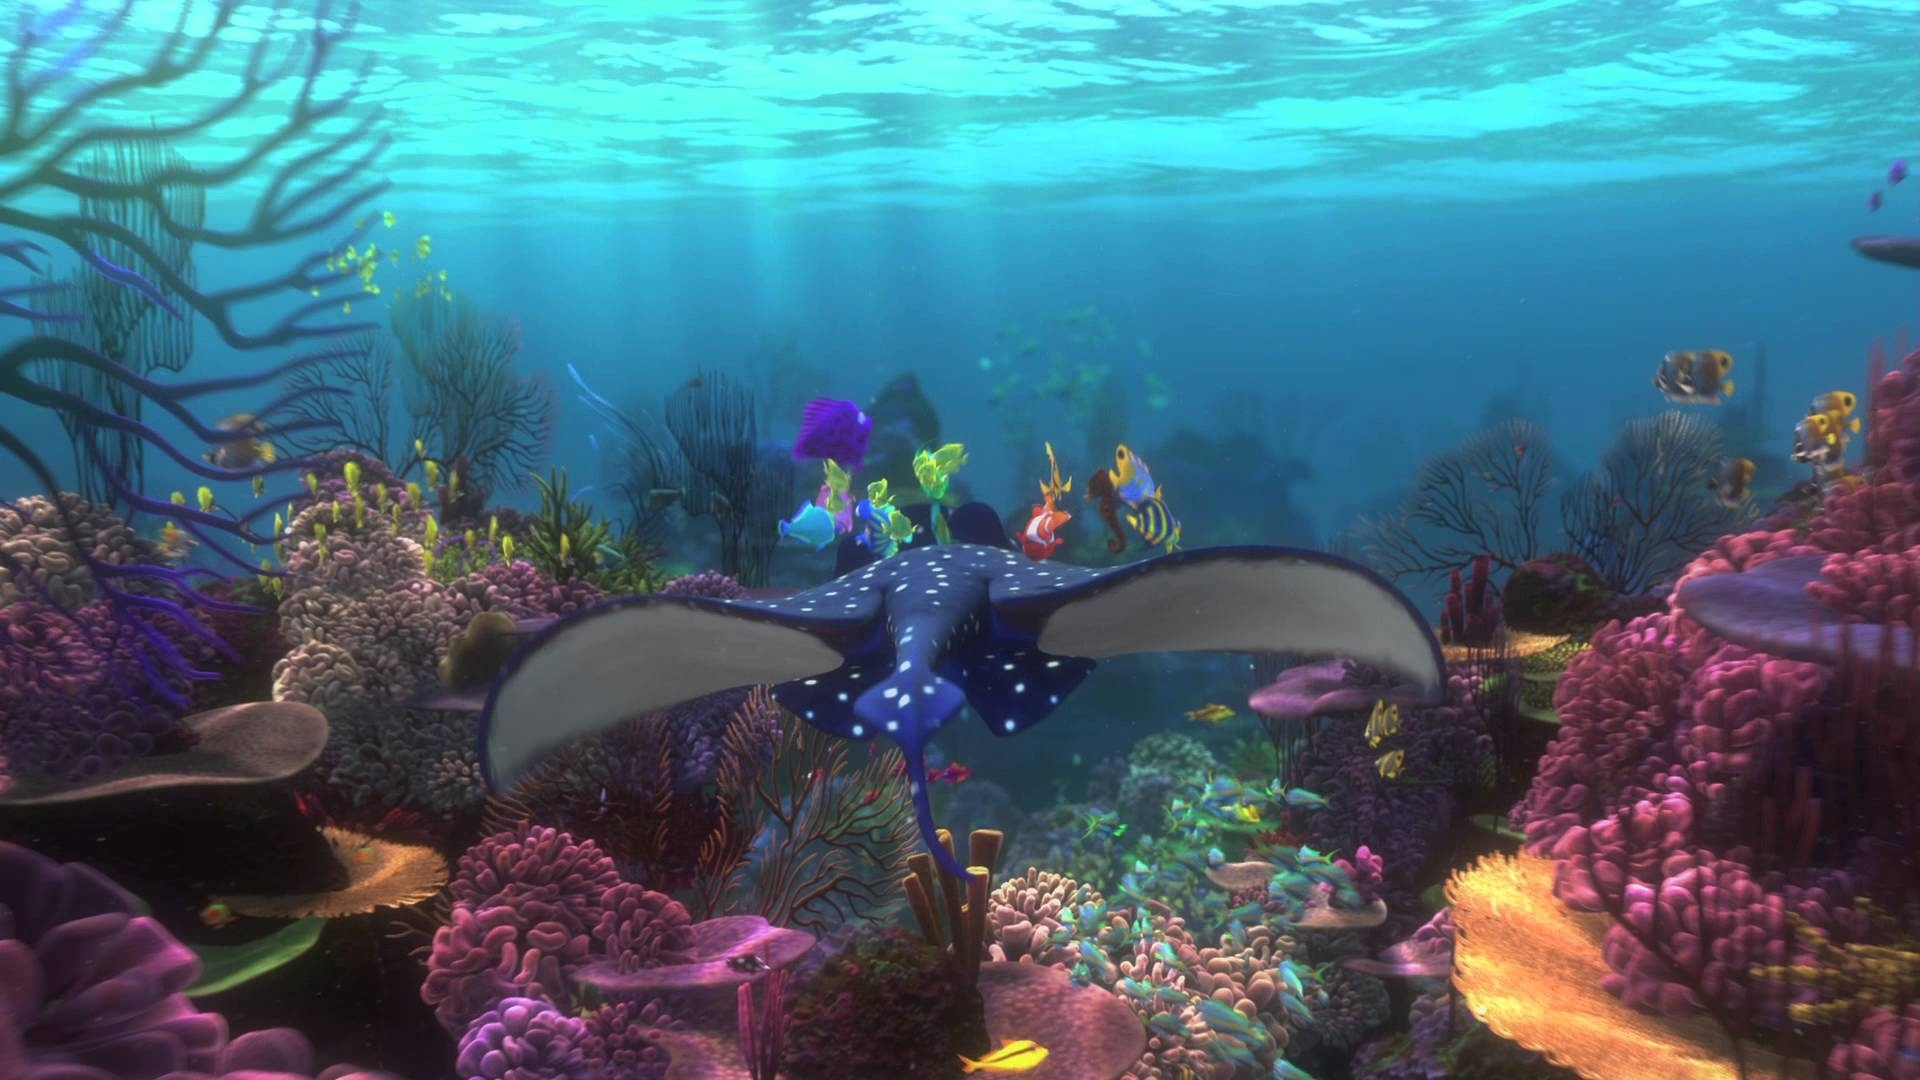 finding nemo backgrounds - wallpaper cave